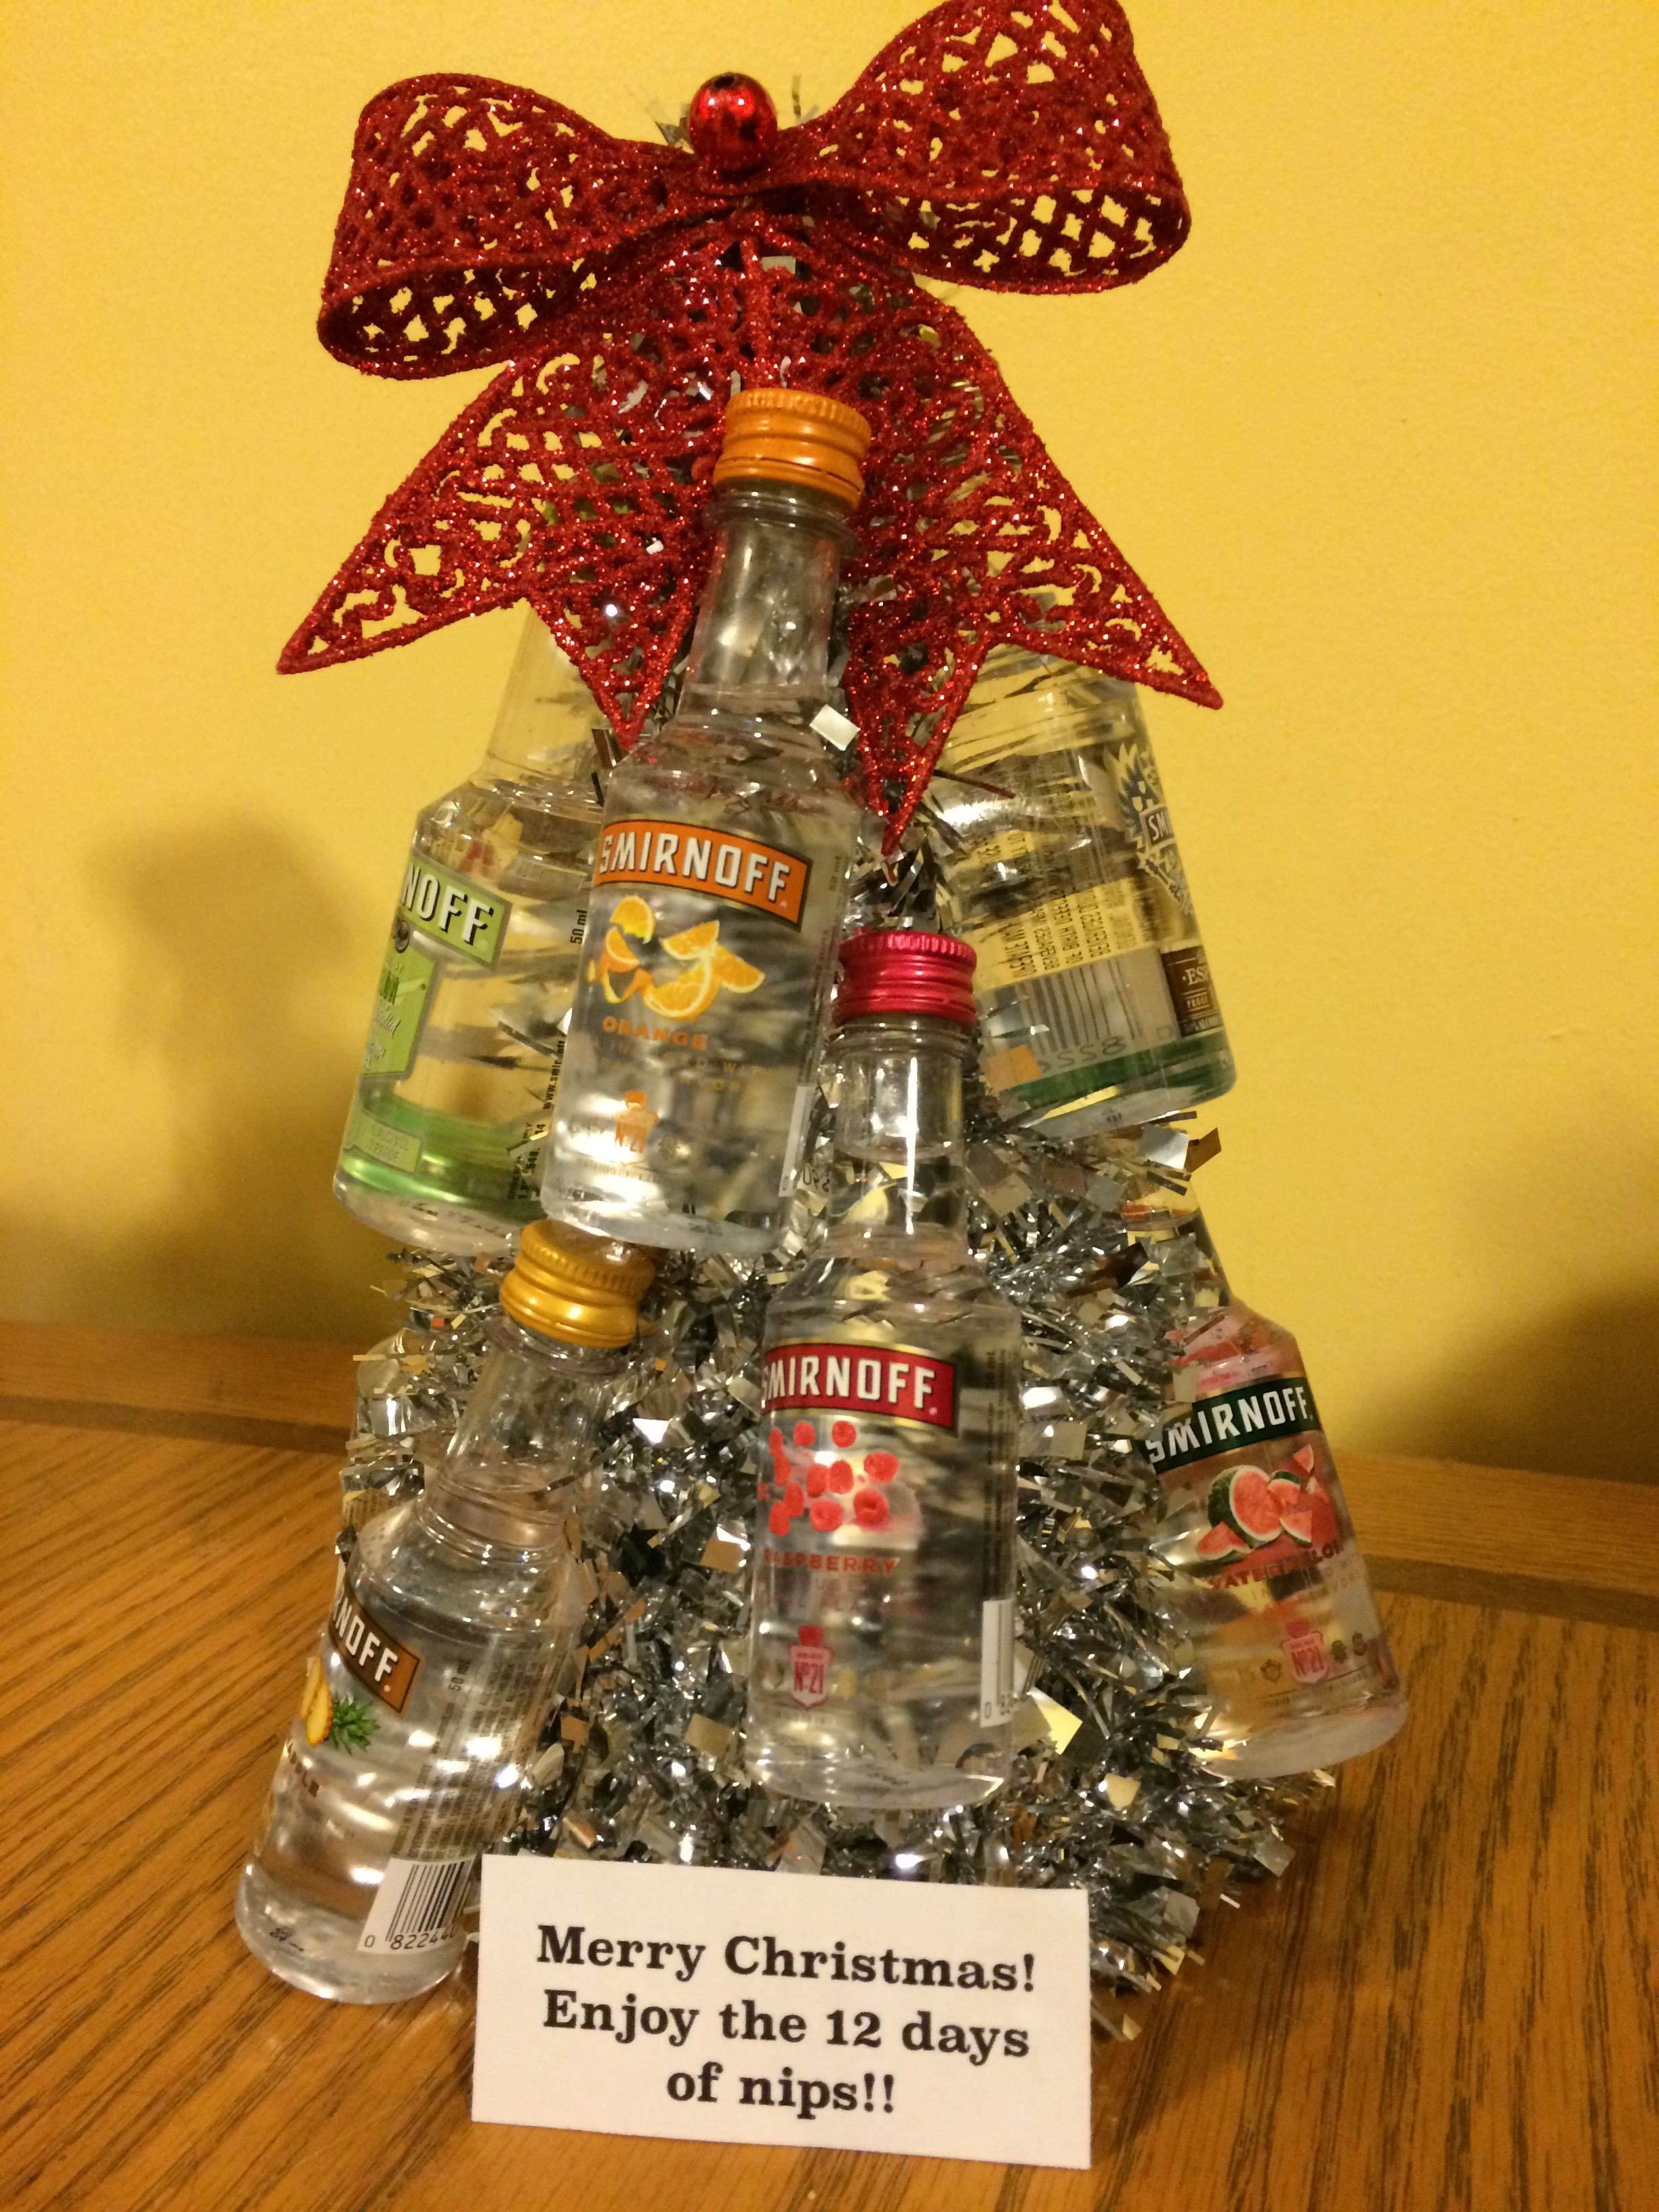 Just made this for my Yankee swap for work. Very easy dollar tree Christmas tree some thin wire to wrap the nips on the tree and bow for the top.